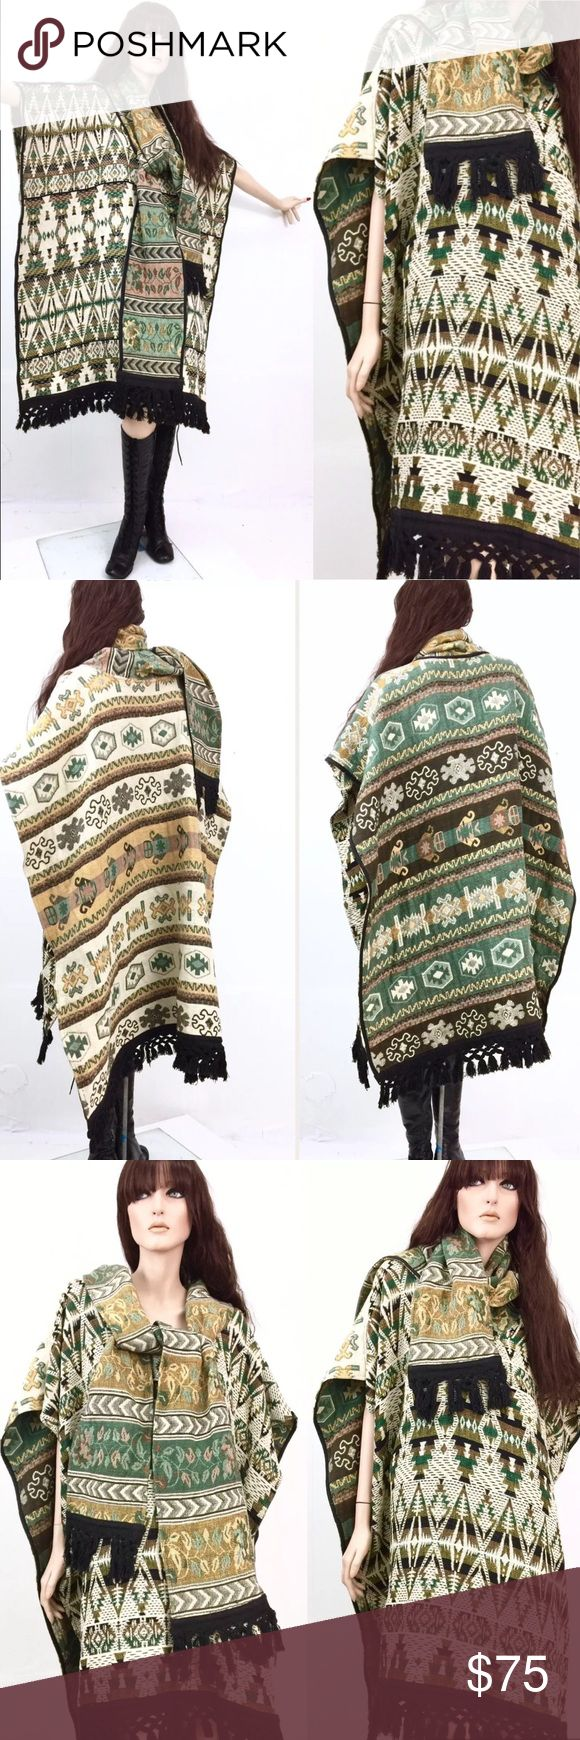 Vintage southwestern tapestry poncho Amazing condition! Totally one of a kind Jackets & Coats Capes